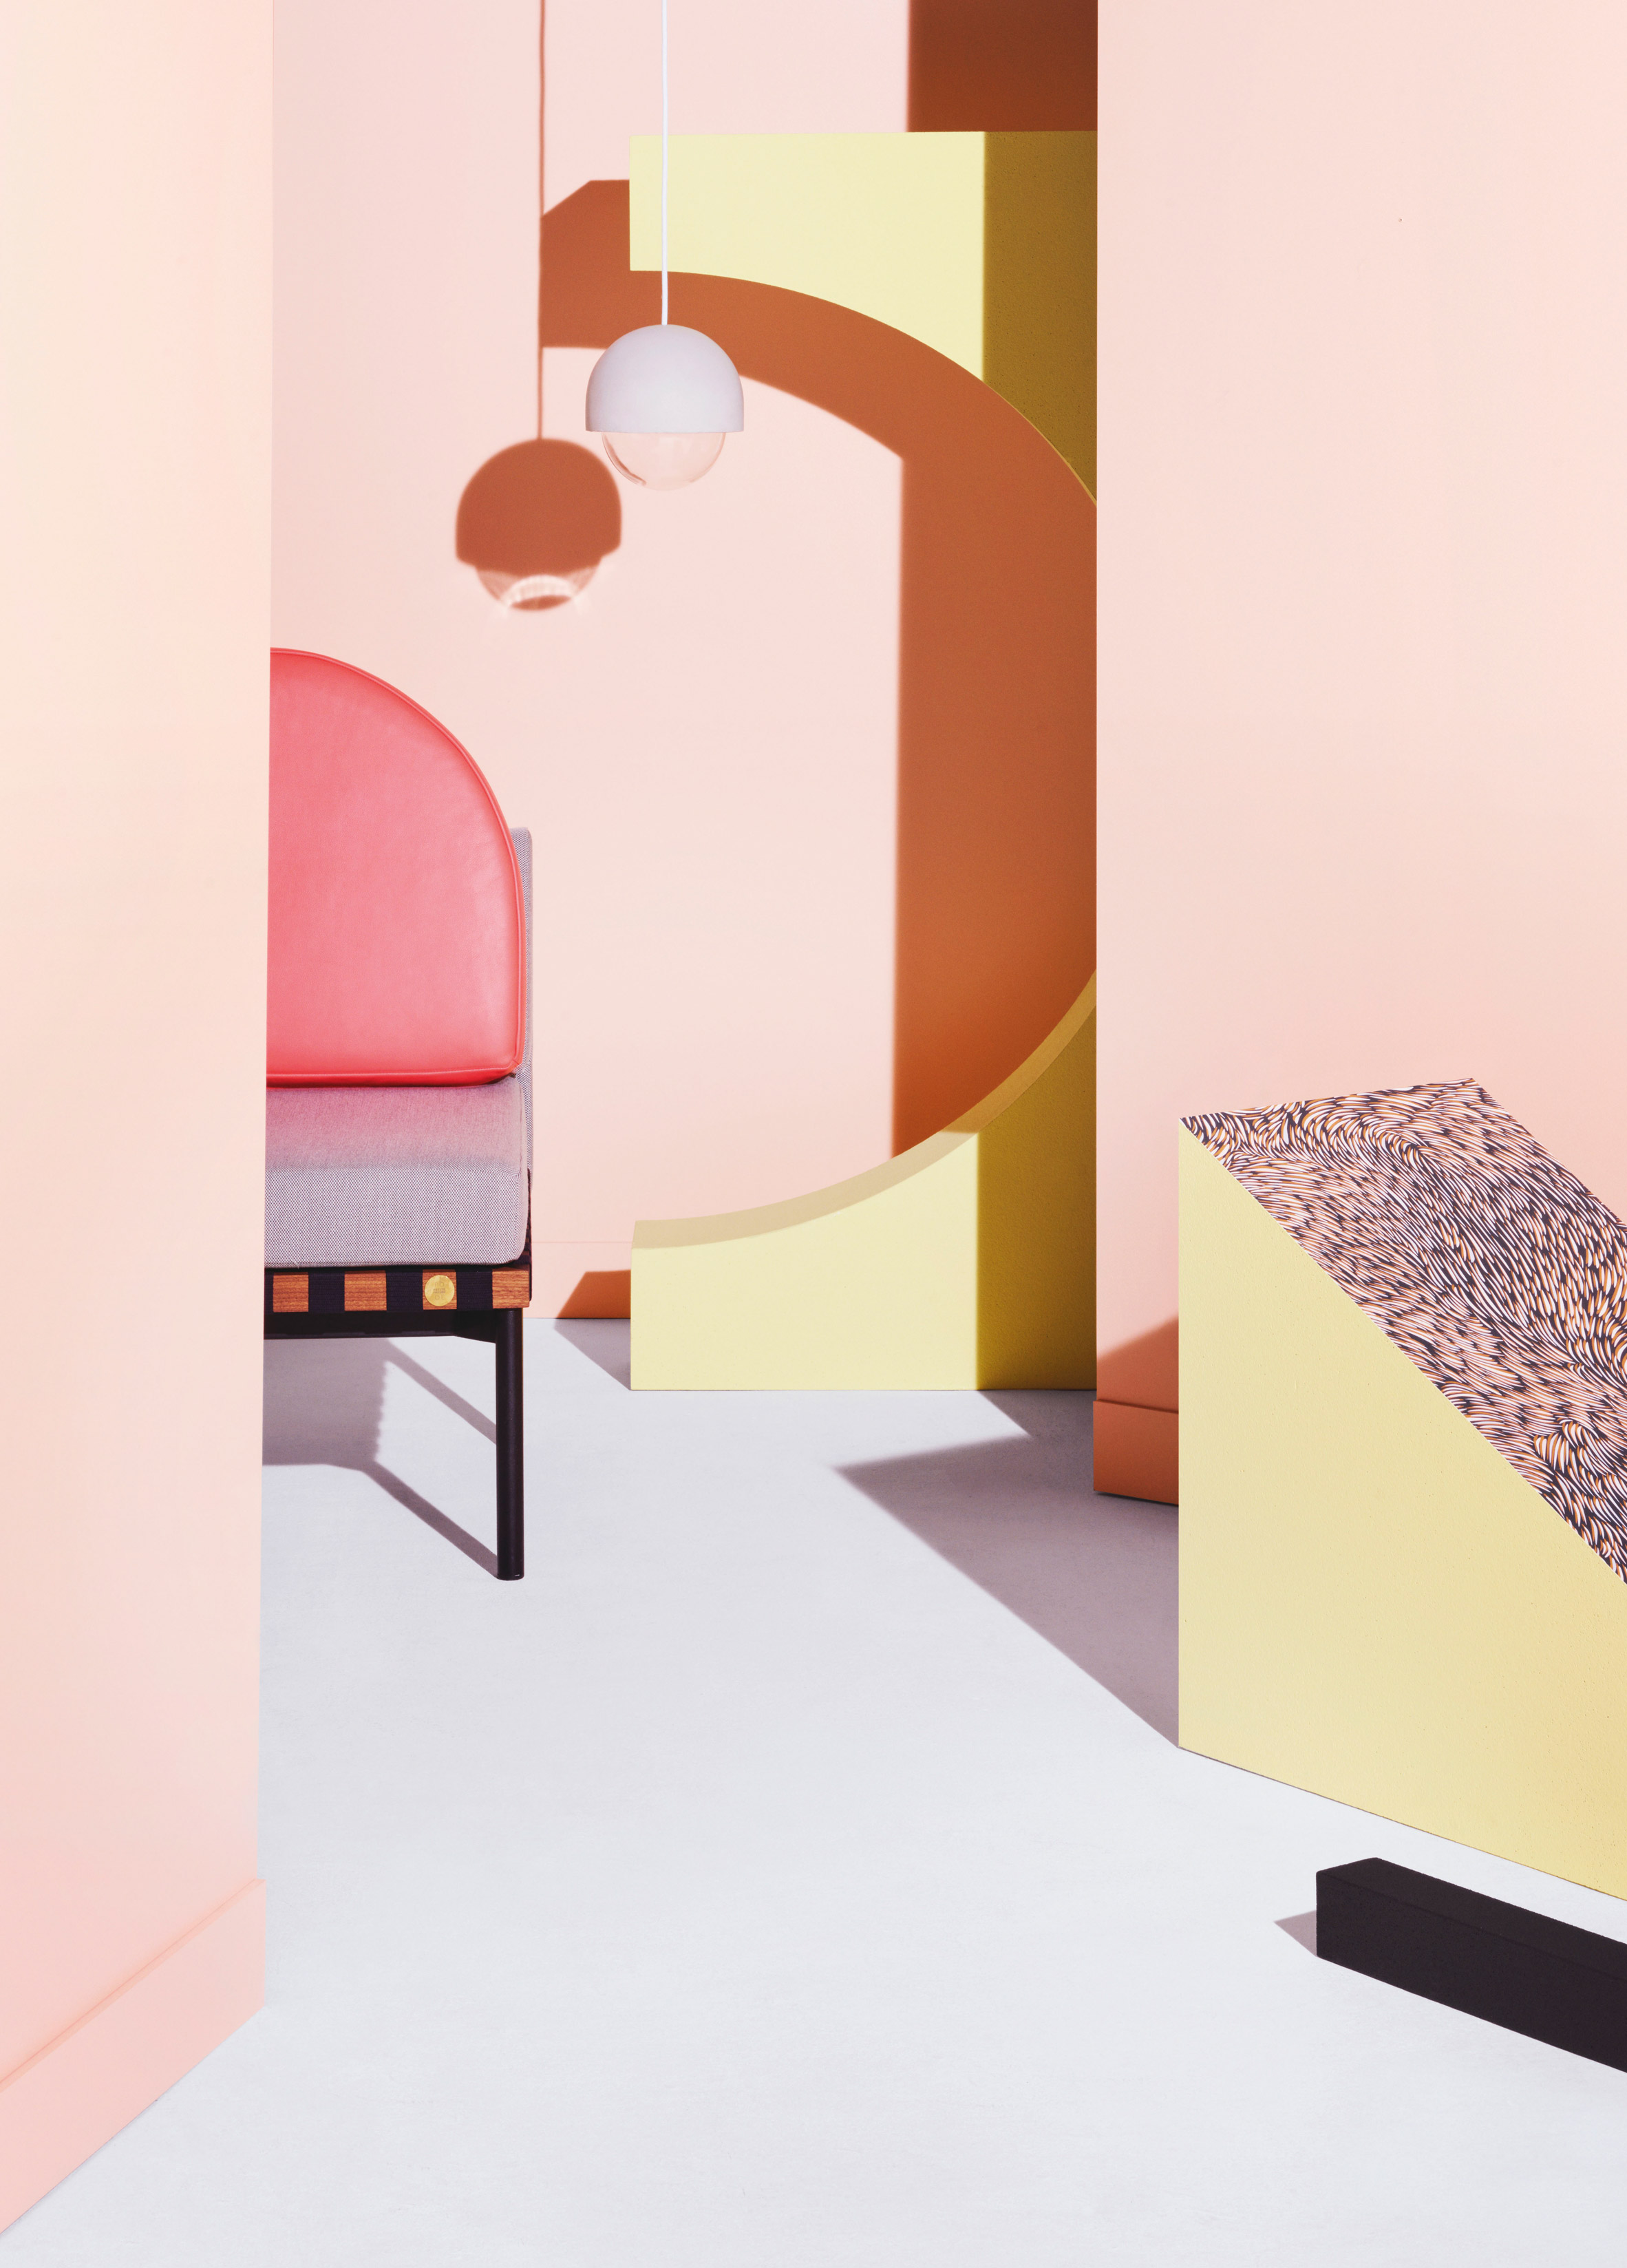 Petite Friture showcases new furniture collection in a modernist environment